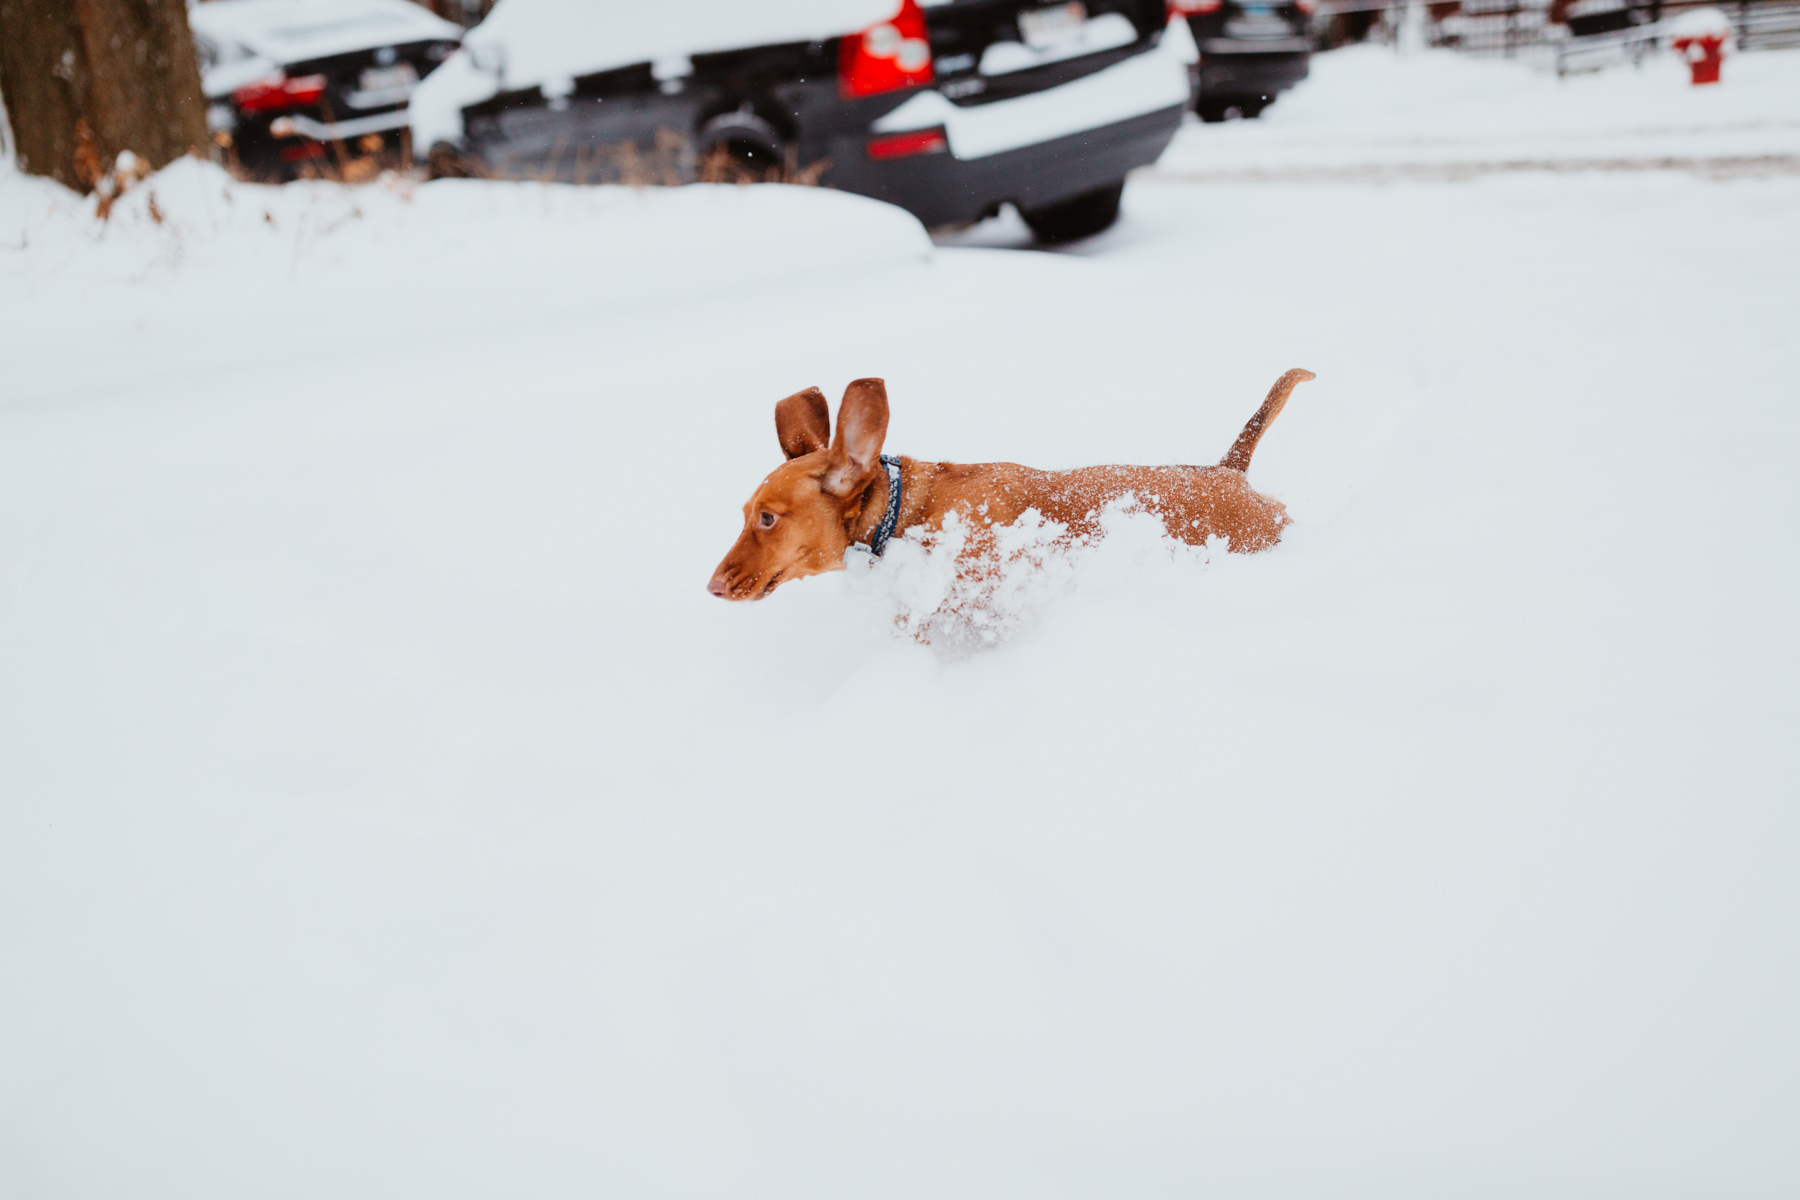 Noodle is running in the snow - Kelly in the City